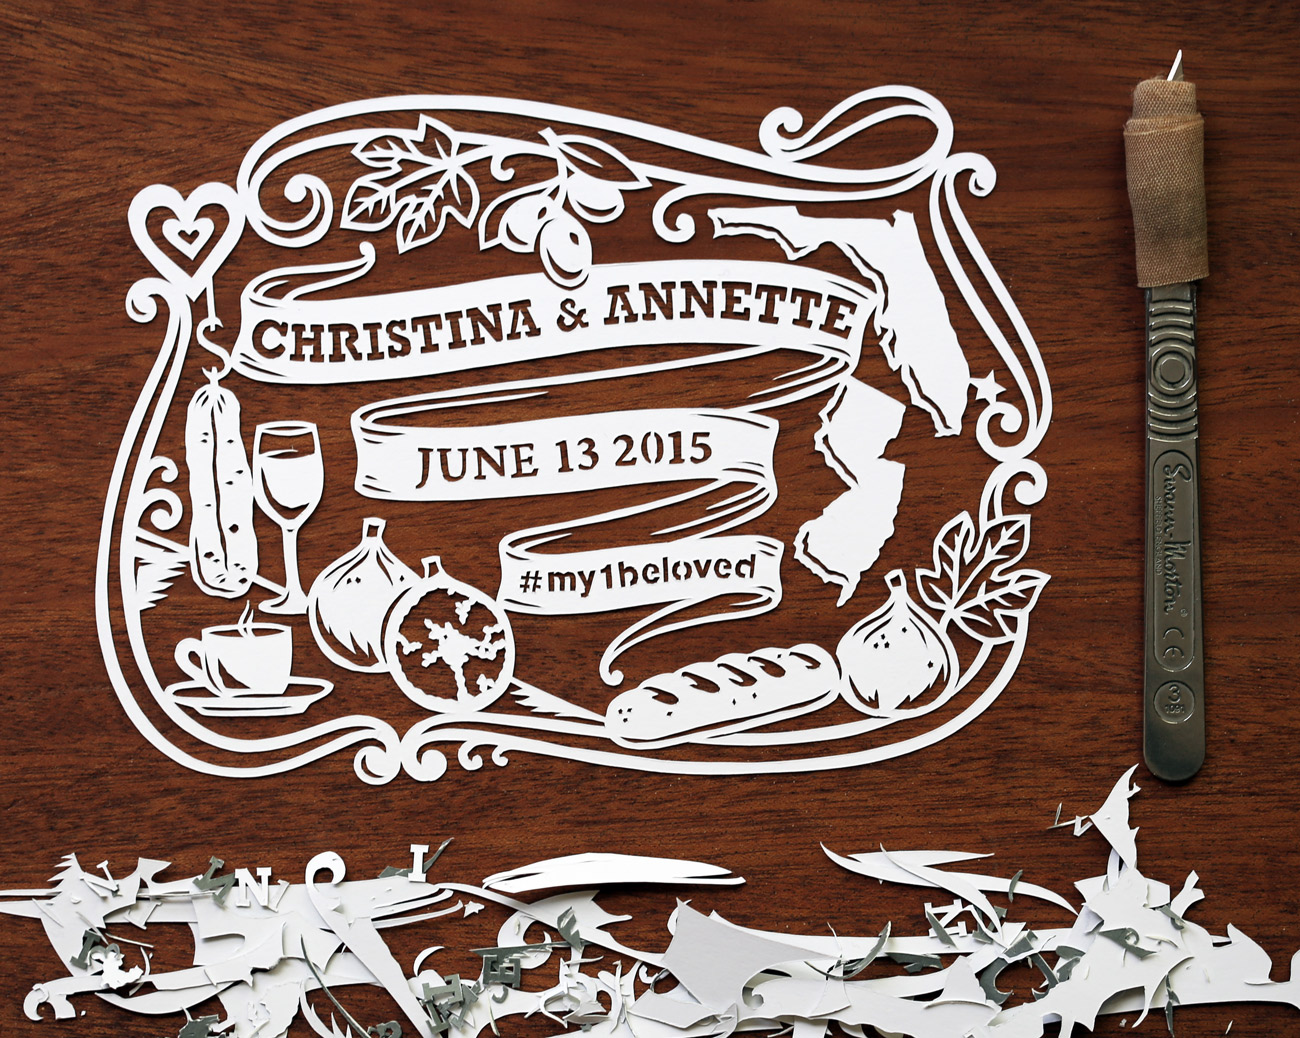 papercut illustration for anniversary, food and wine